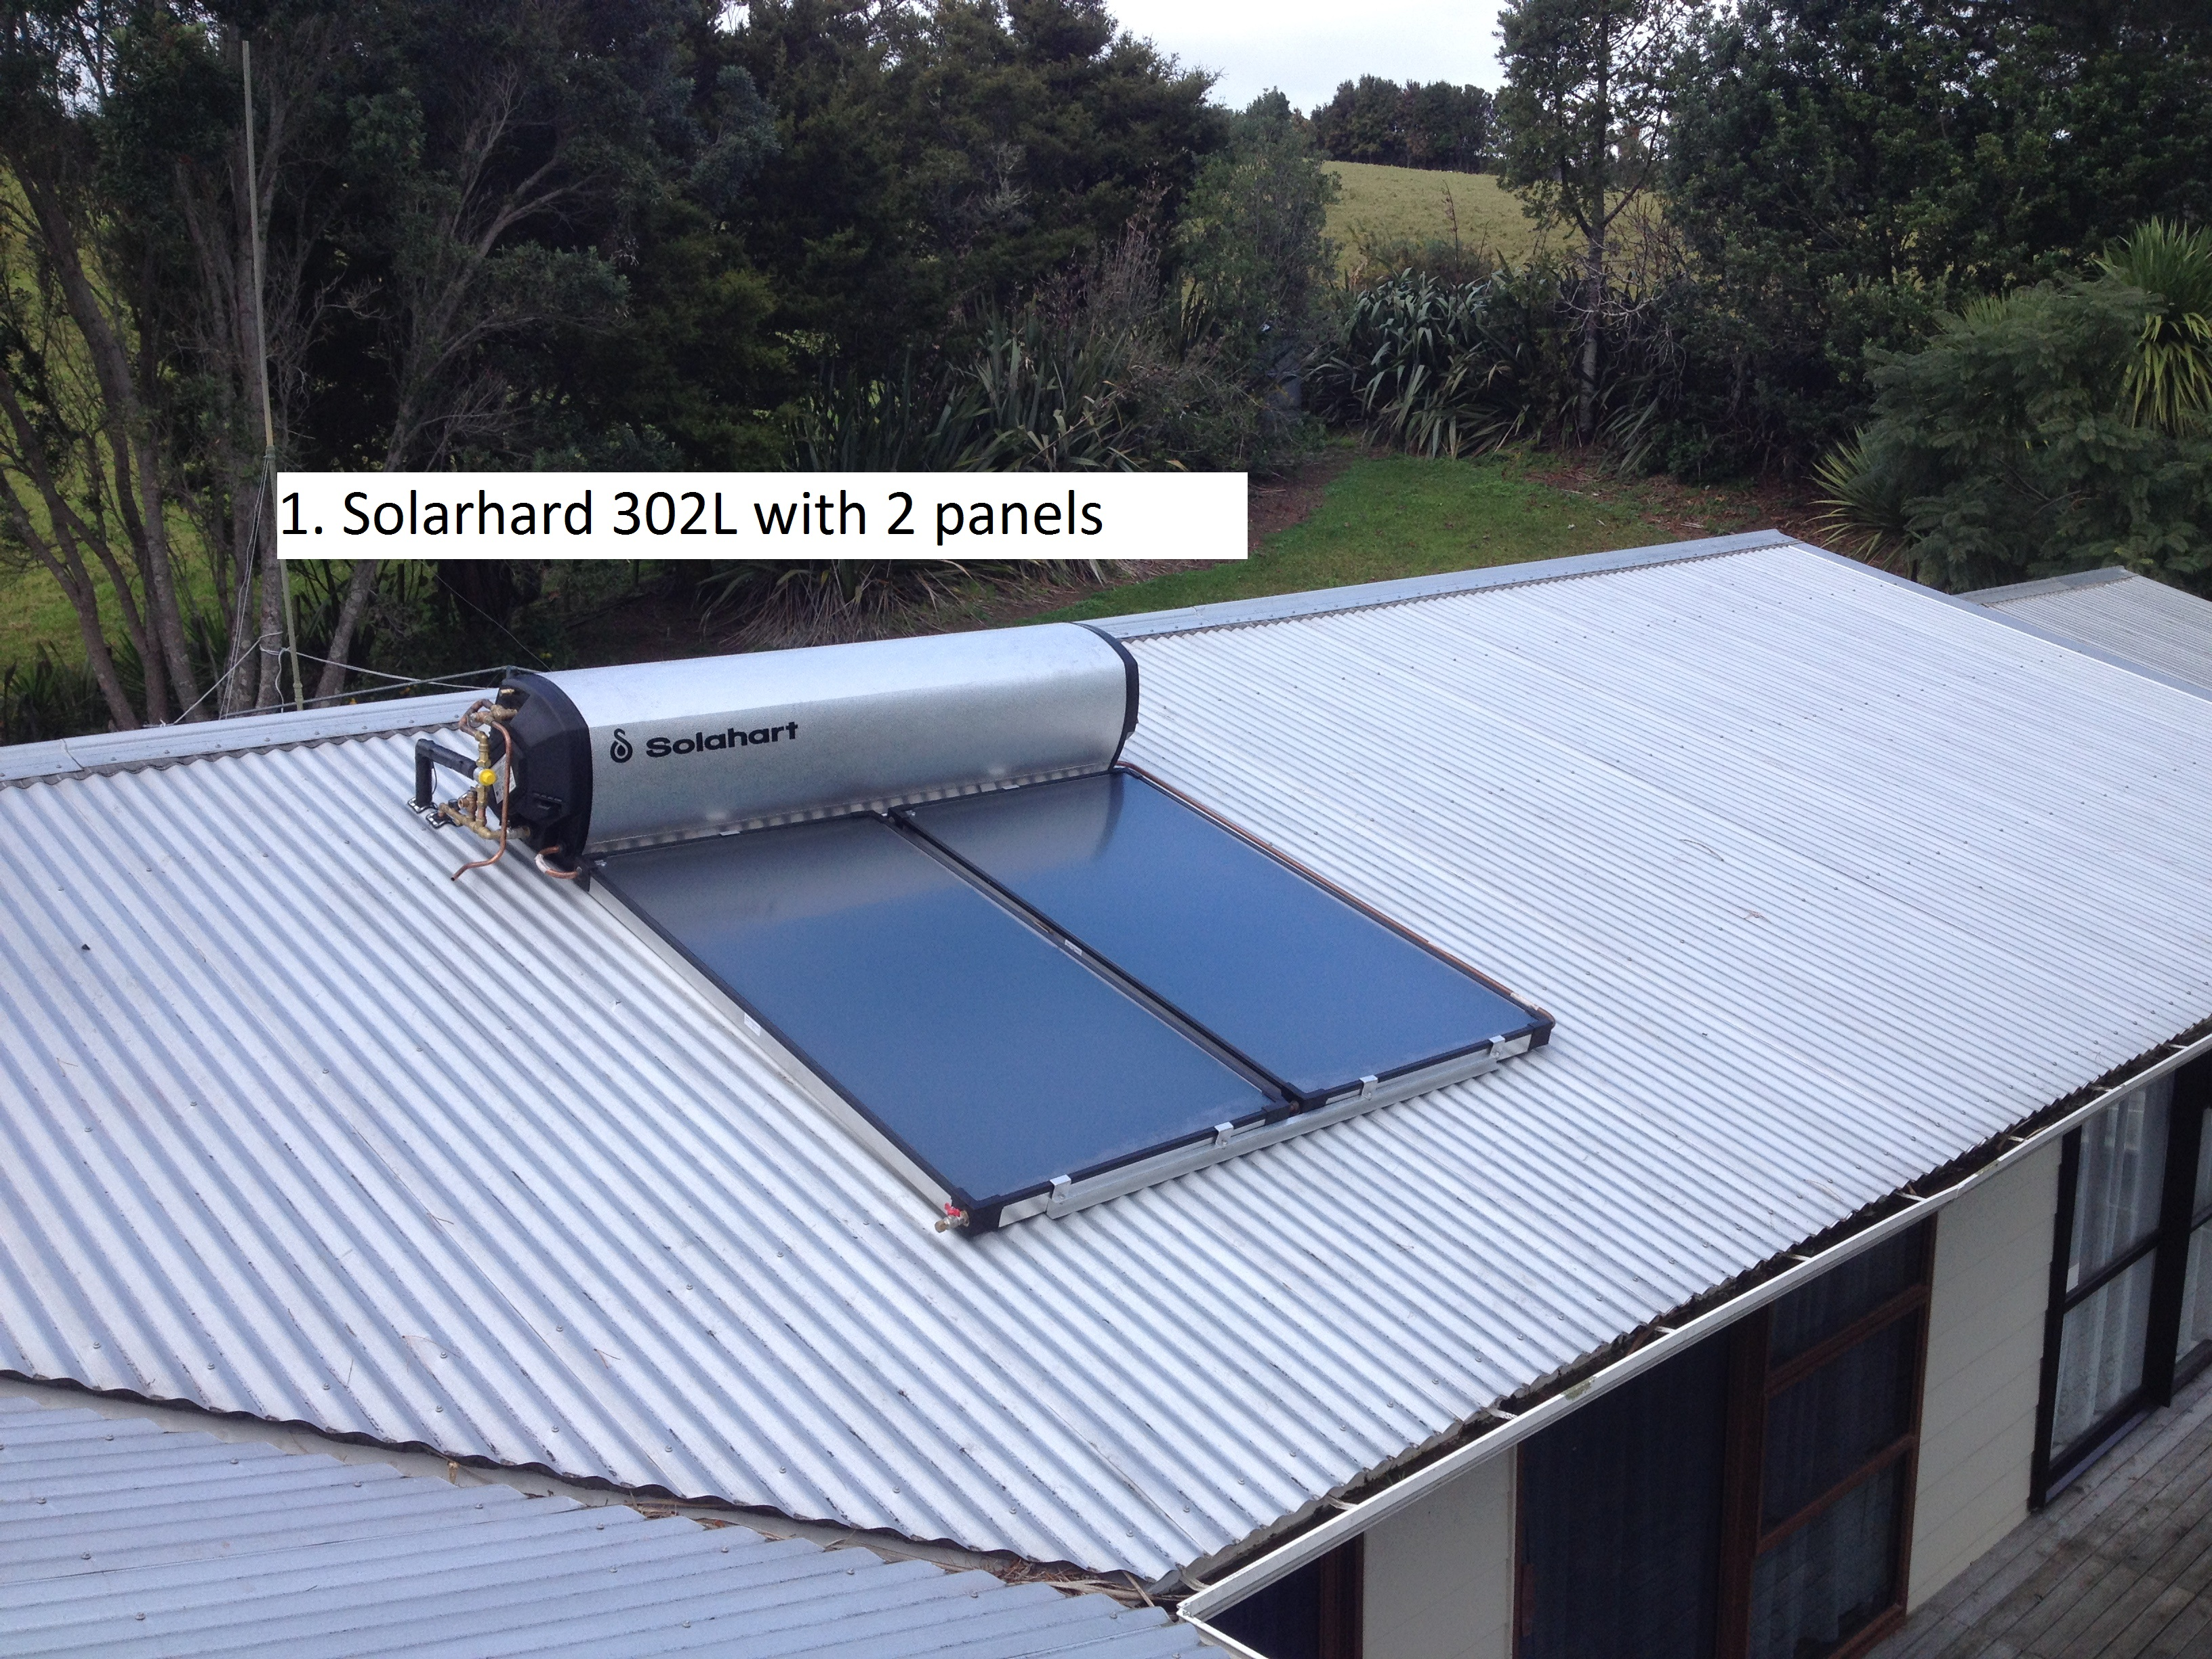 Solahart 302L CSC 2.4kw system with 5